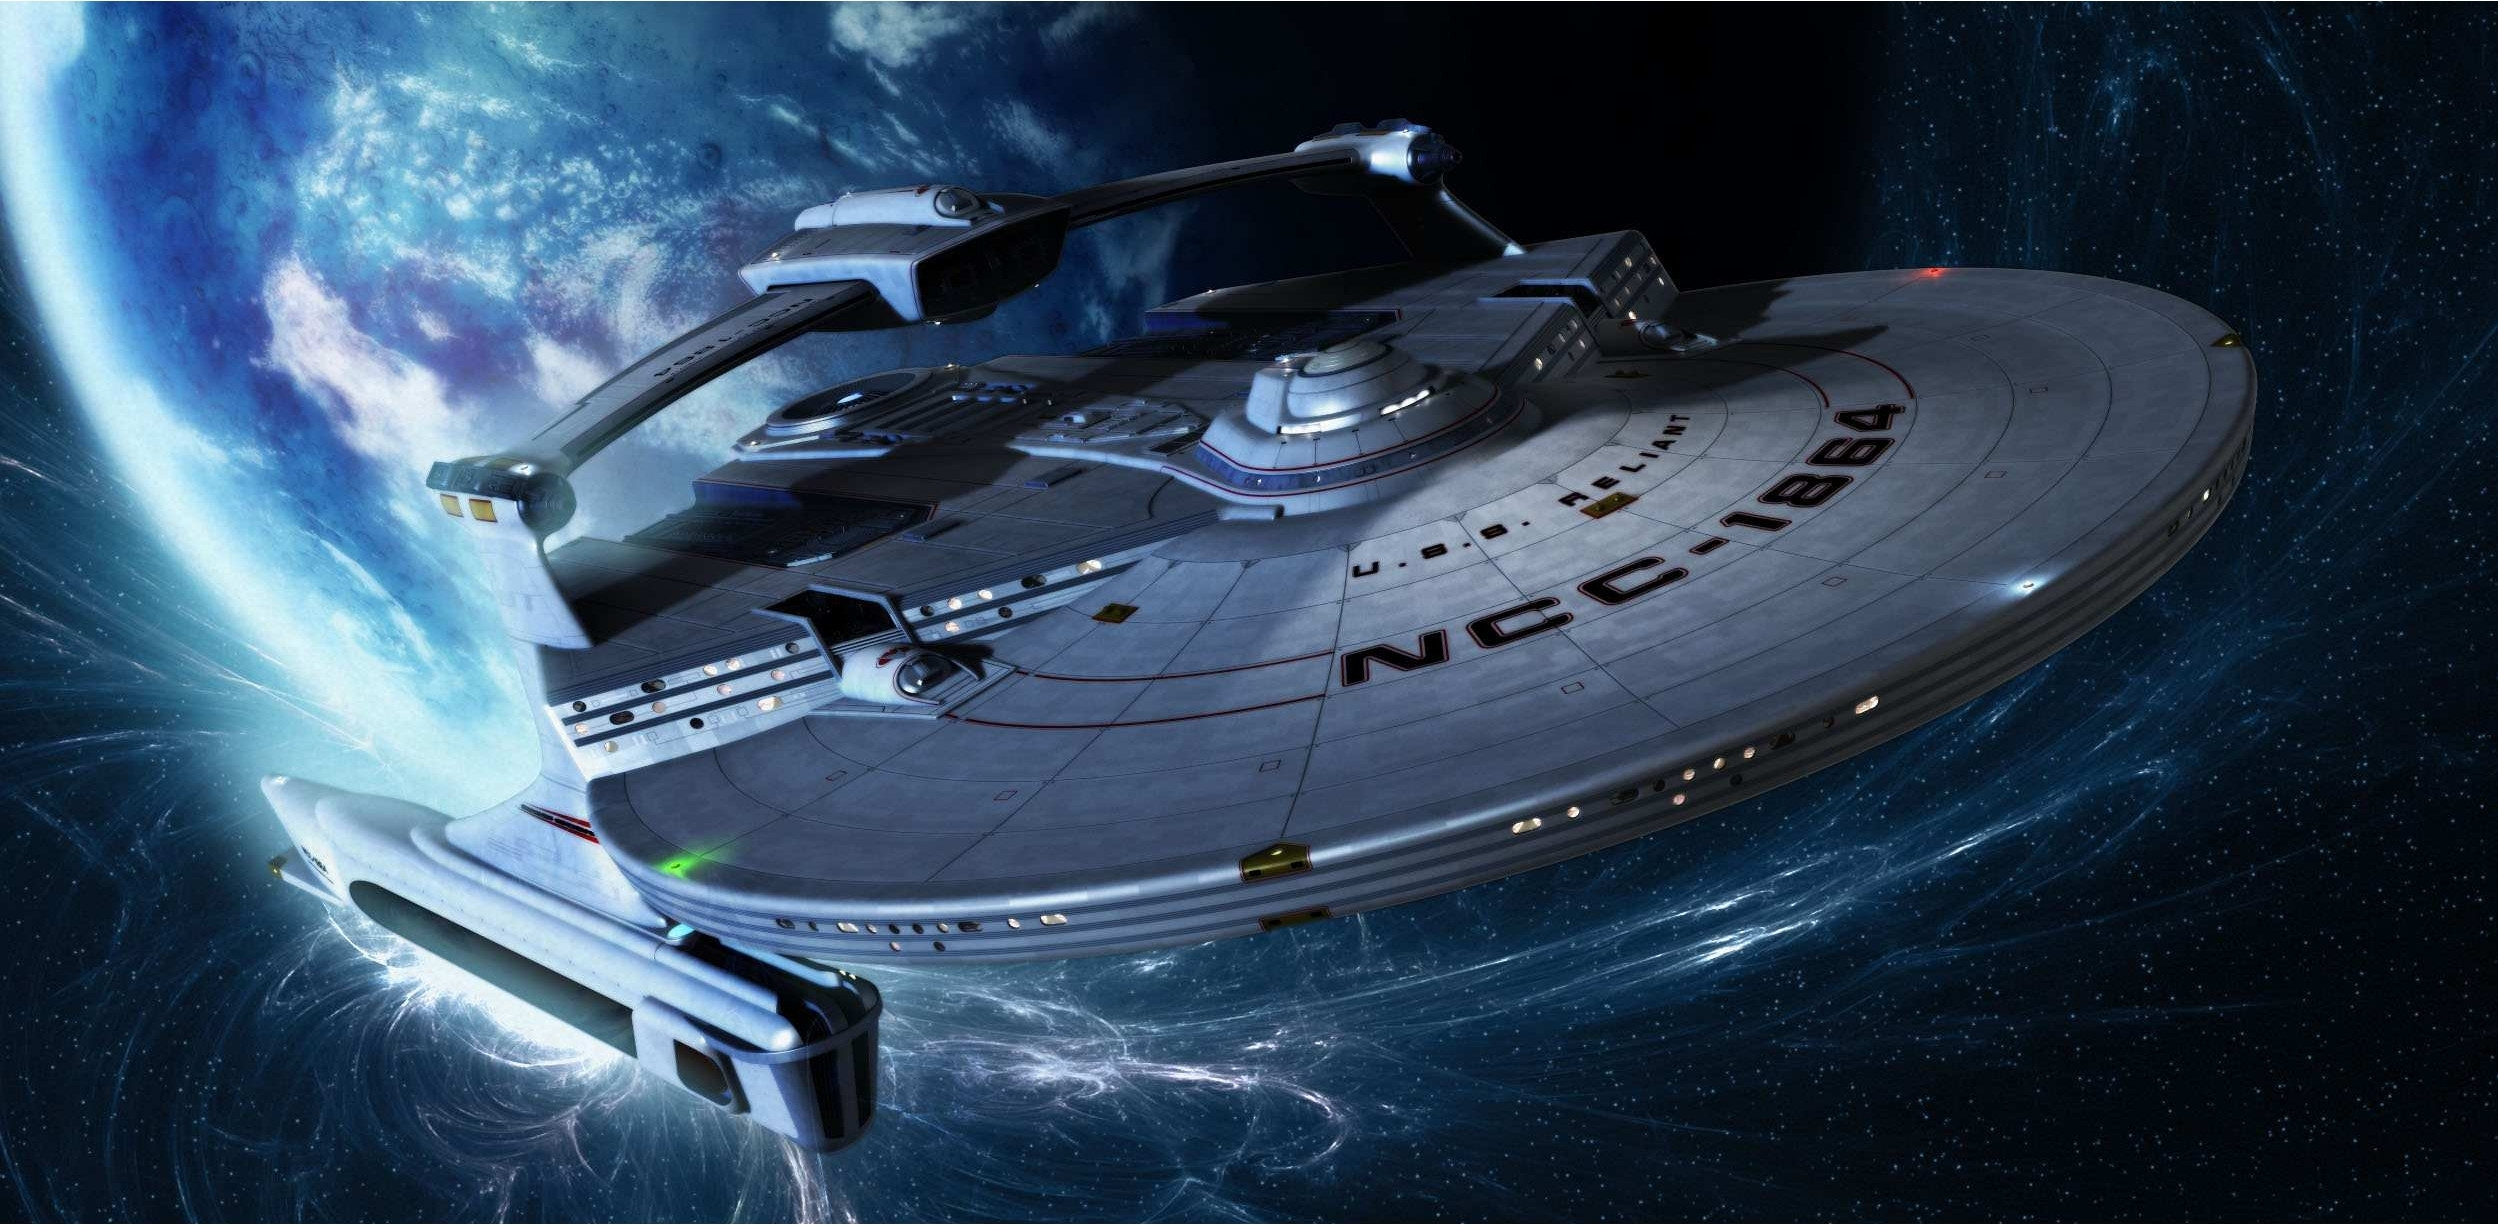 star trek starship wallpaper (65+ images)